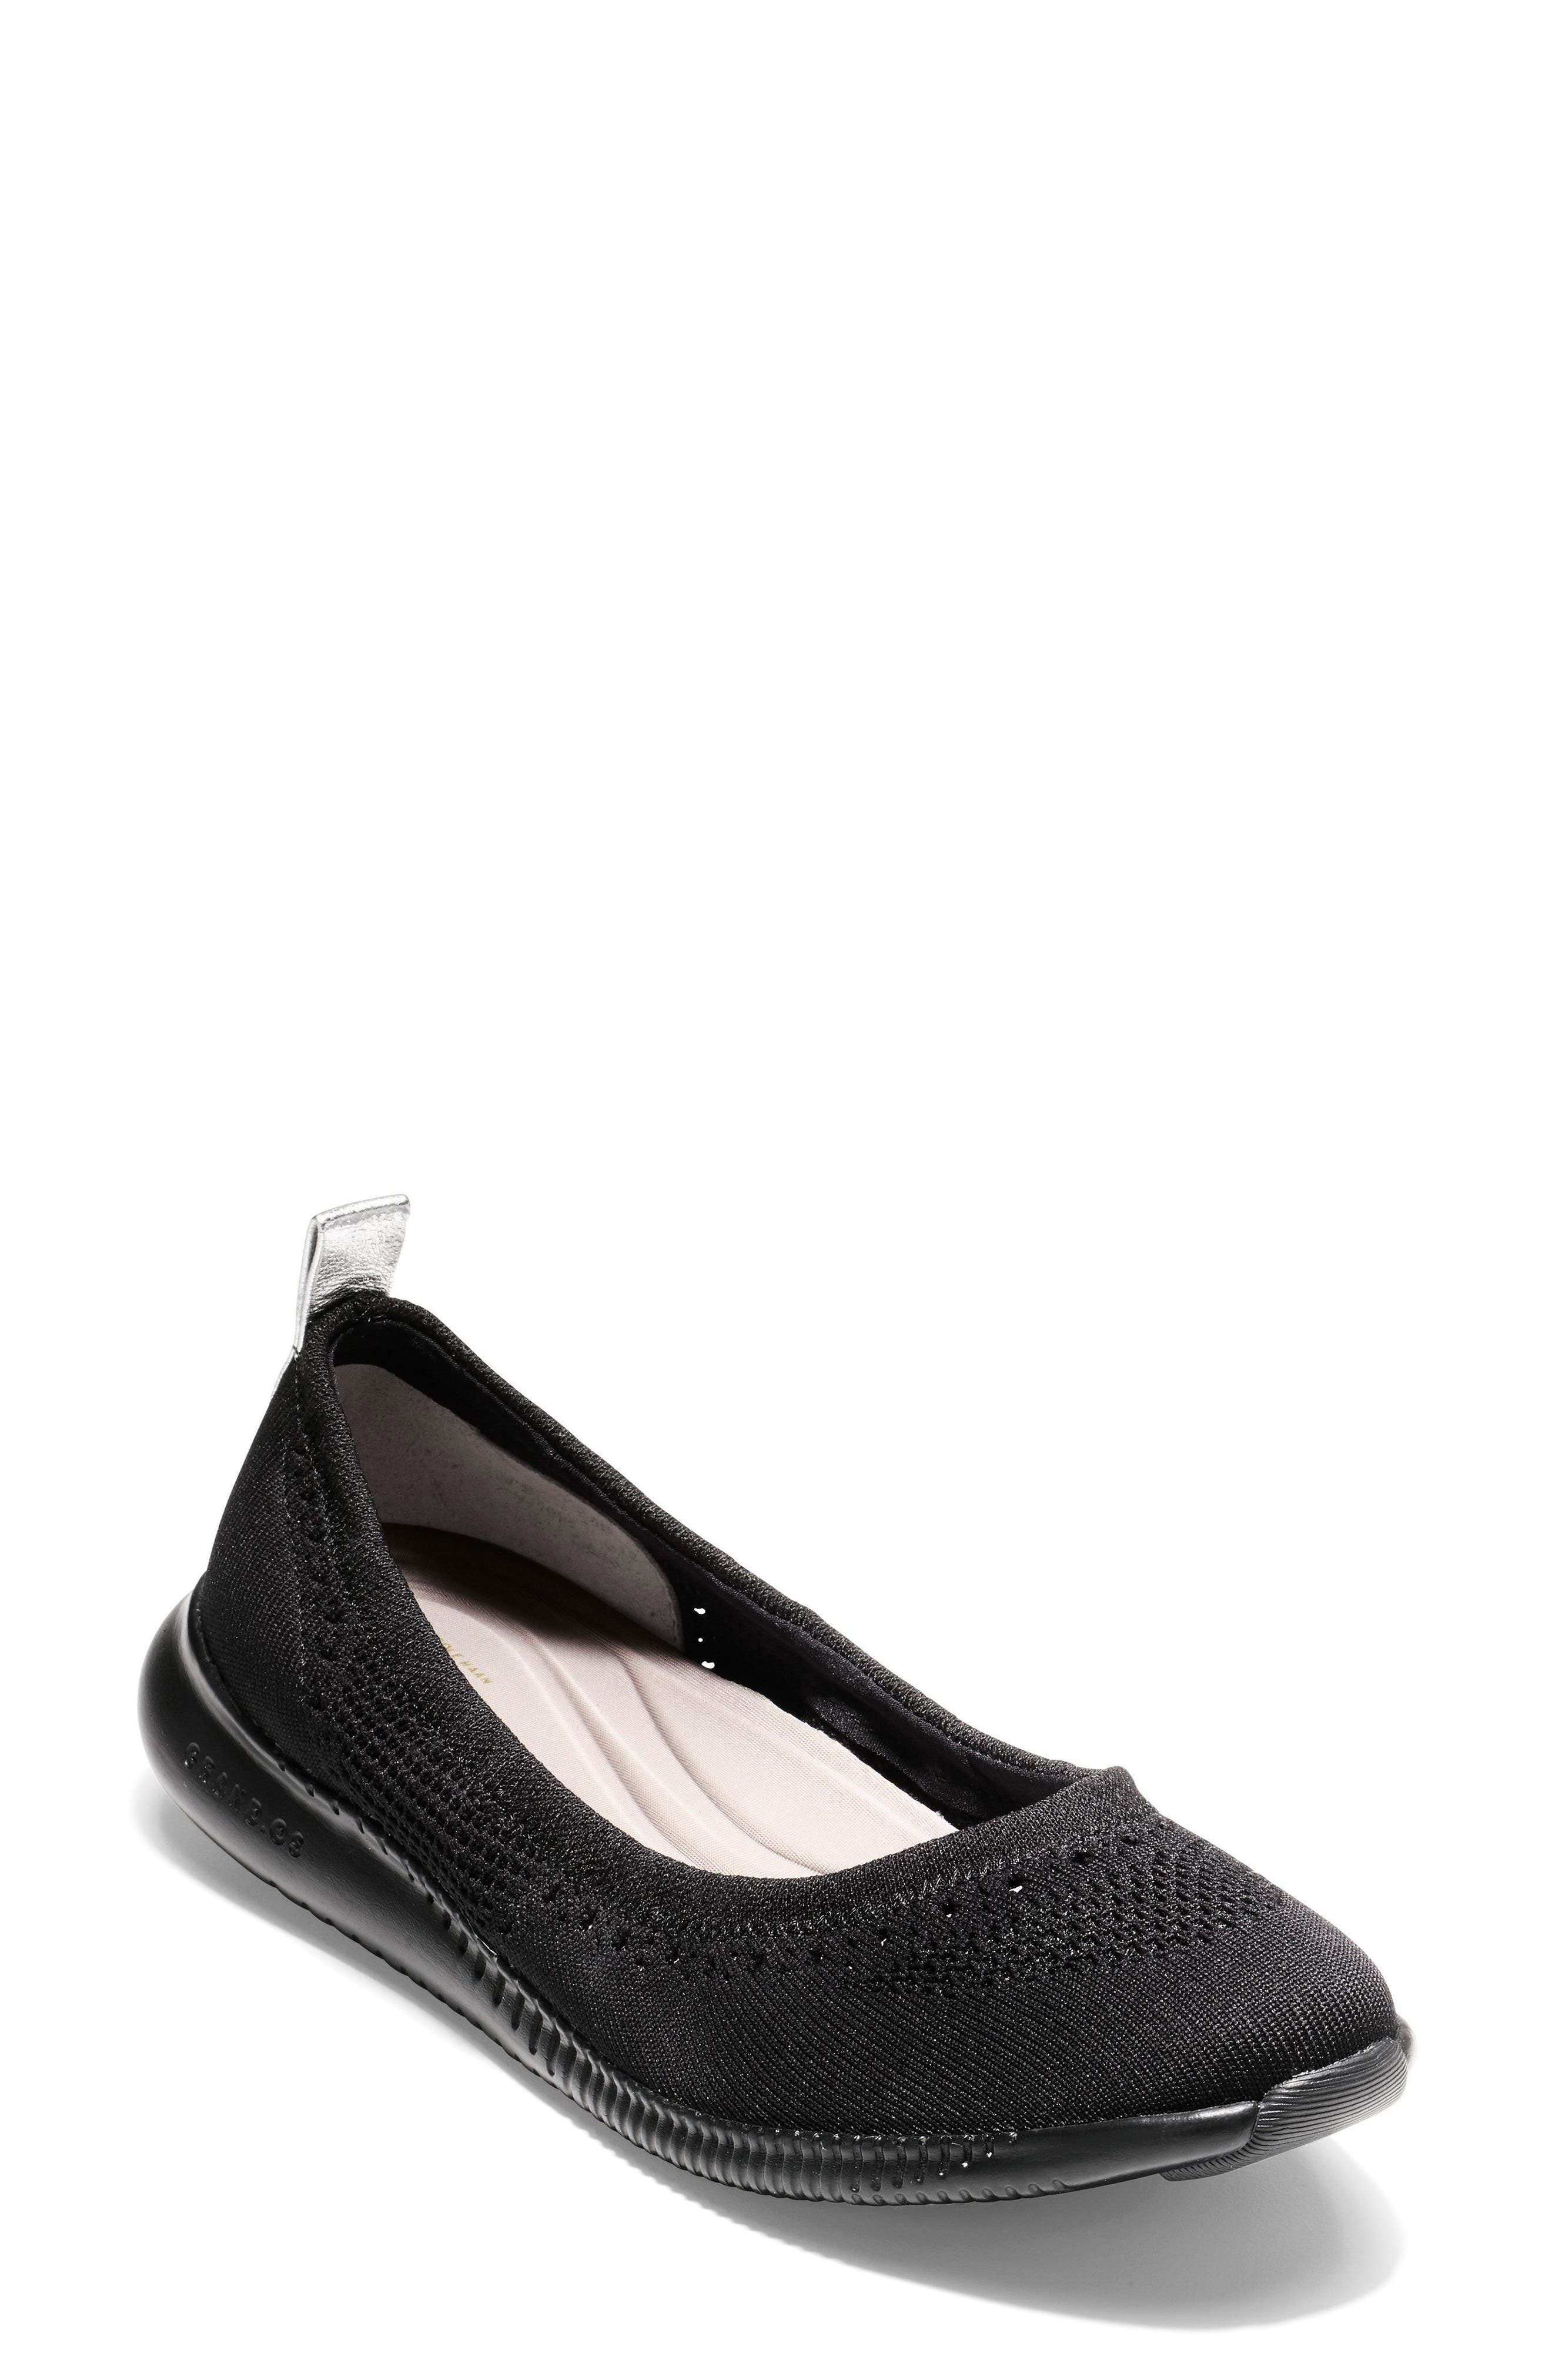 COLE HAAN 2.ZERØGRAND Stitchlite Ballet Flat, Main, color, BLACK FABRIC